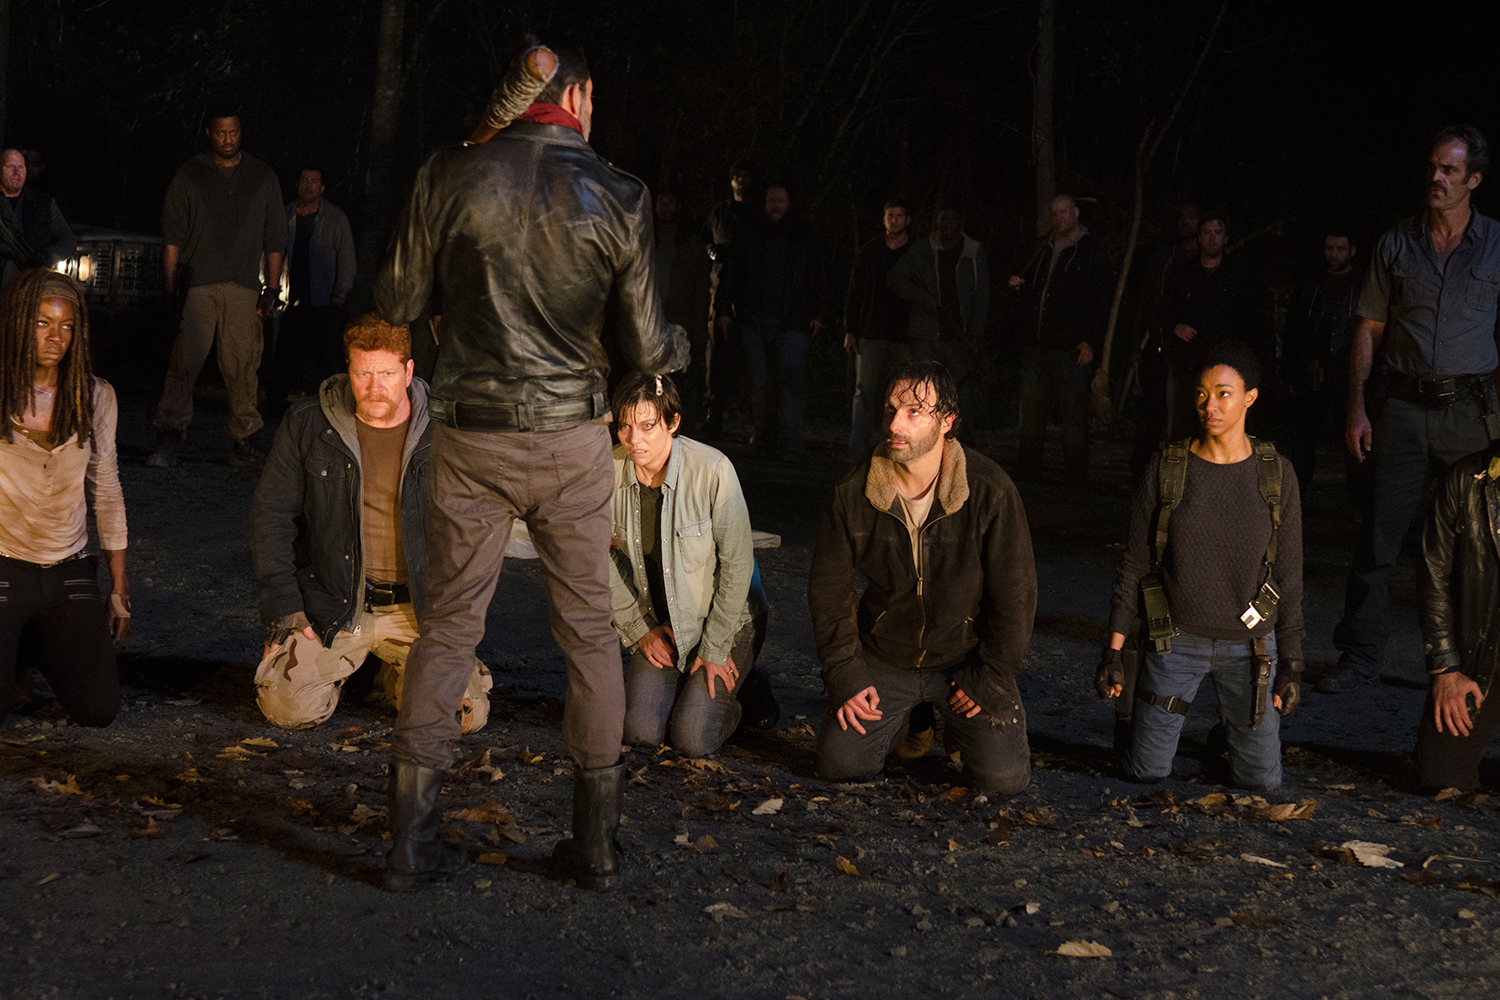 The Walking Dead Premiere Clobbers Ratings But Sparks